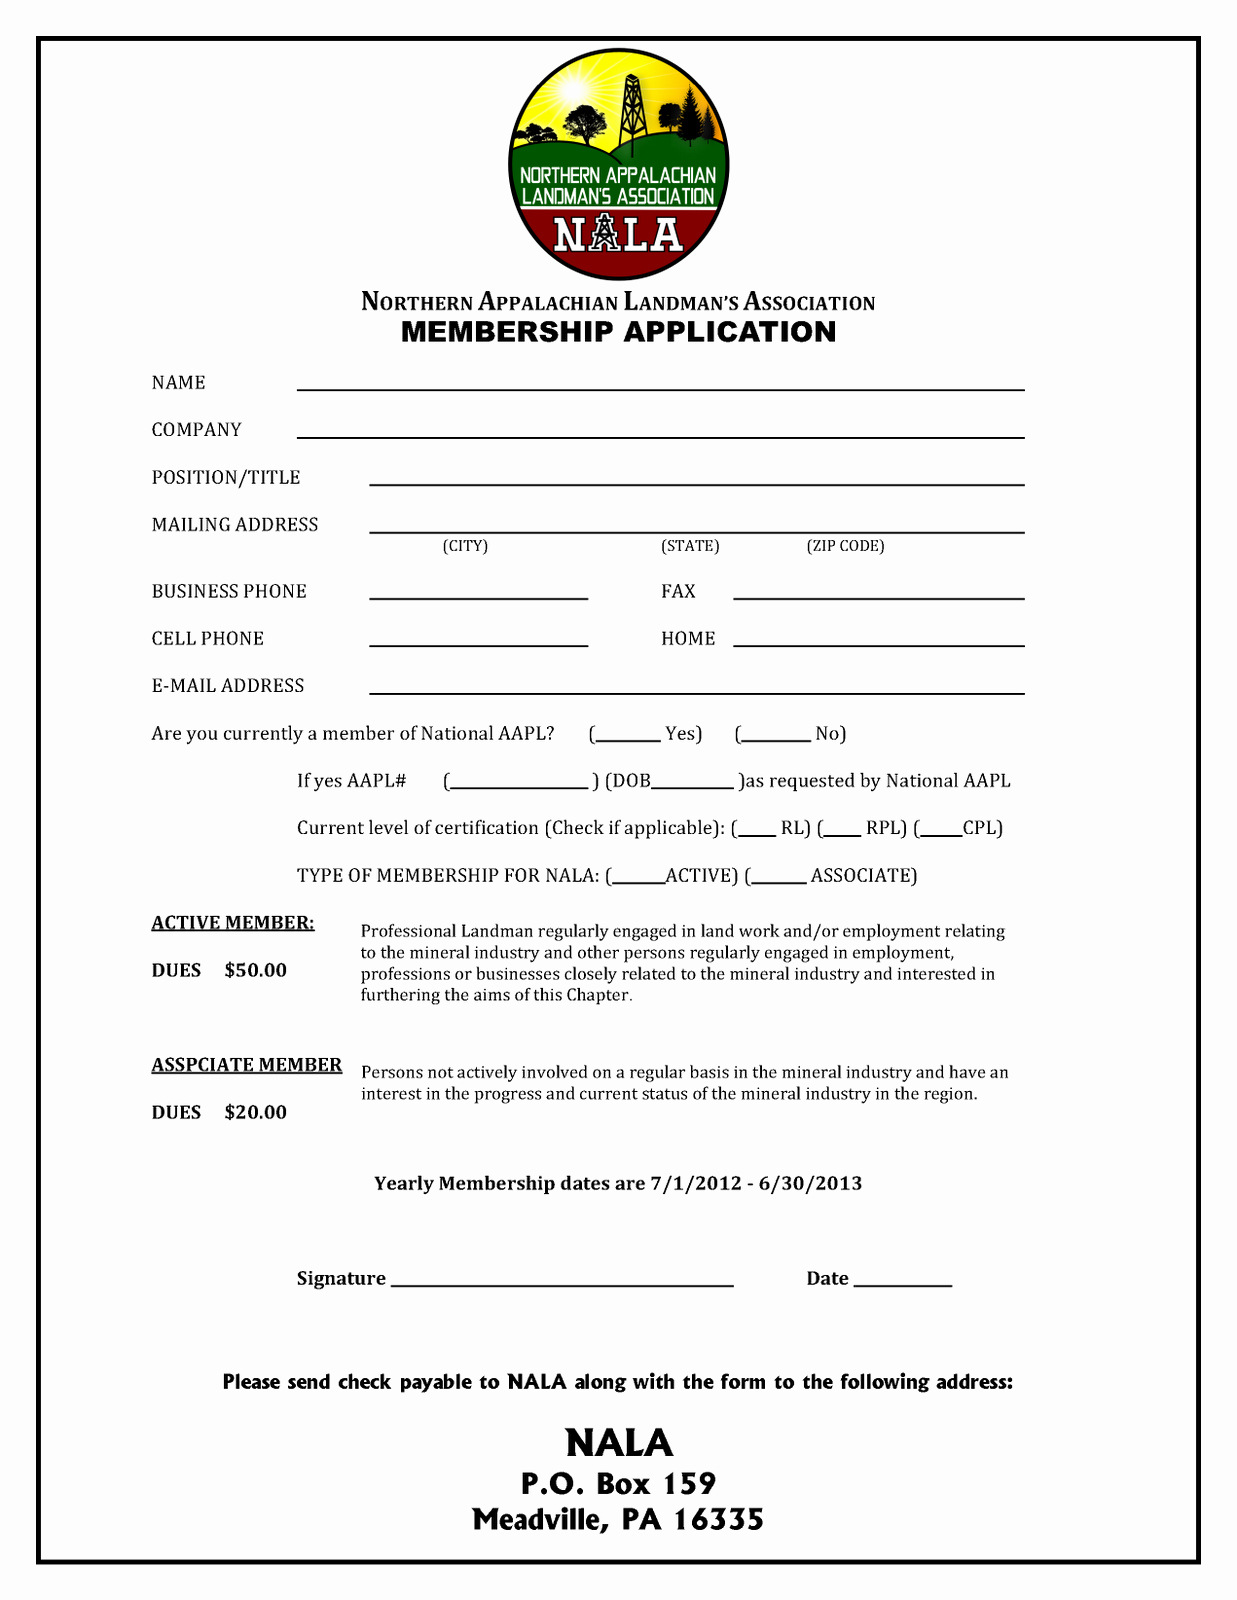 Church Membership form Awesome northern Appalachian Landman S association Membership